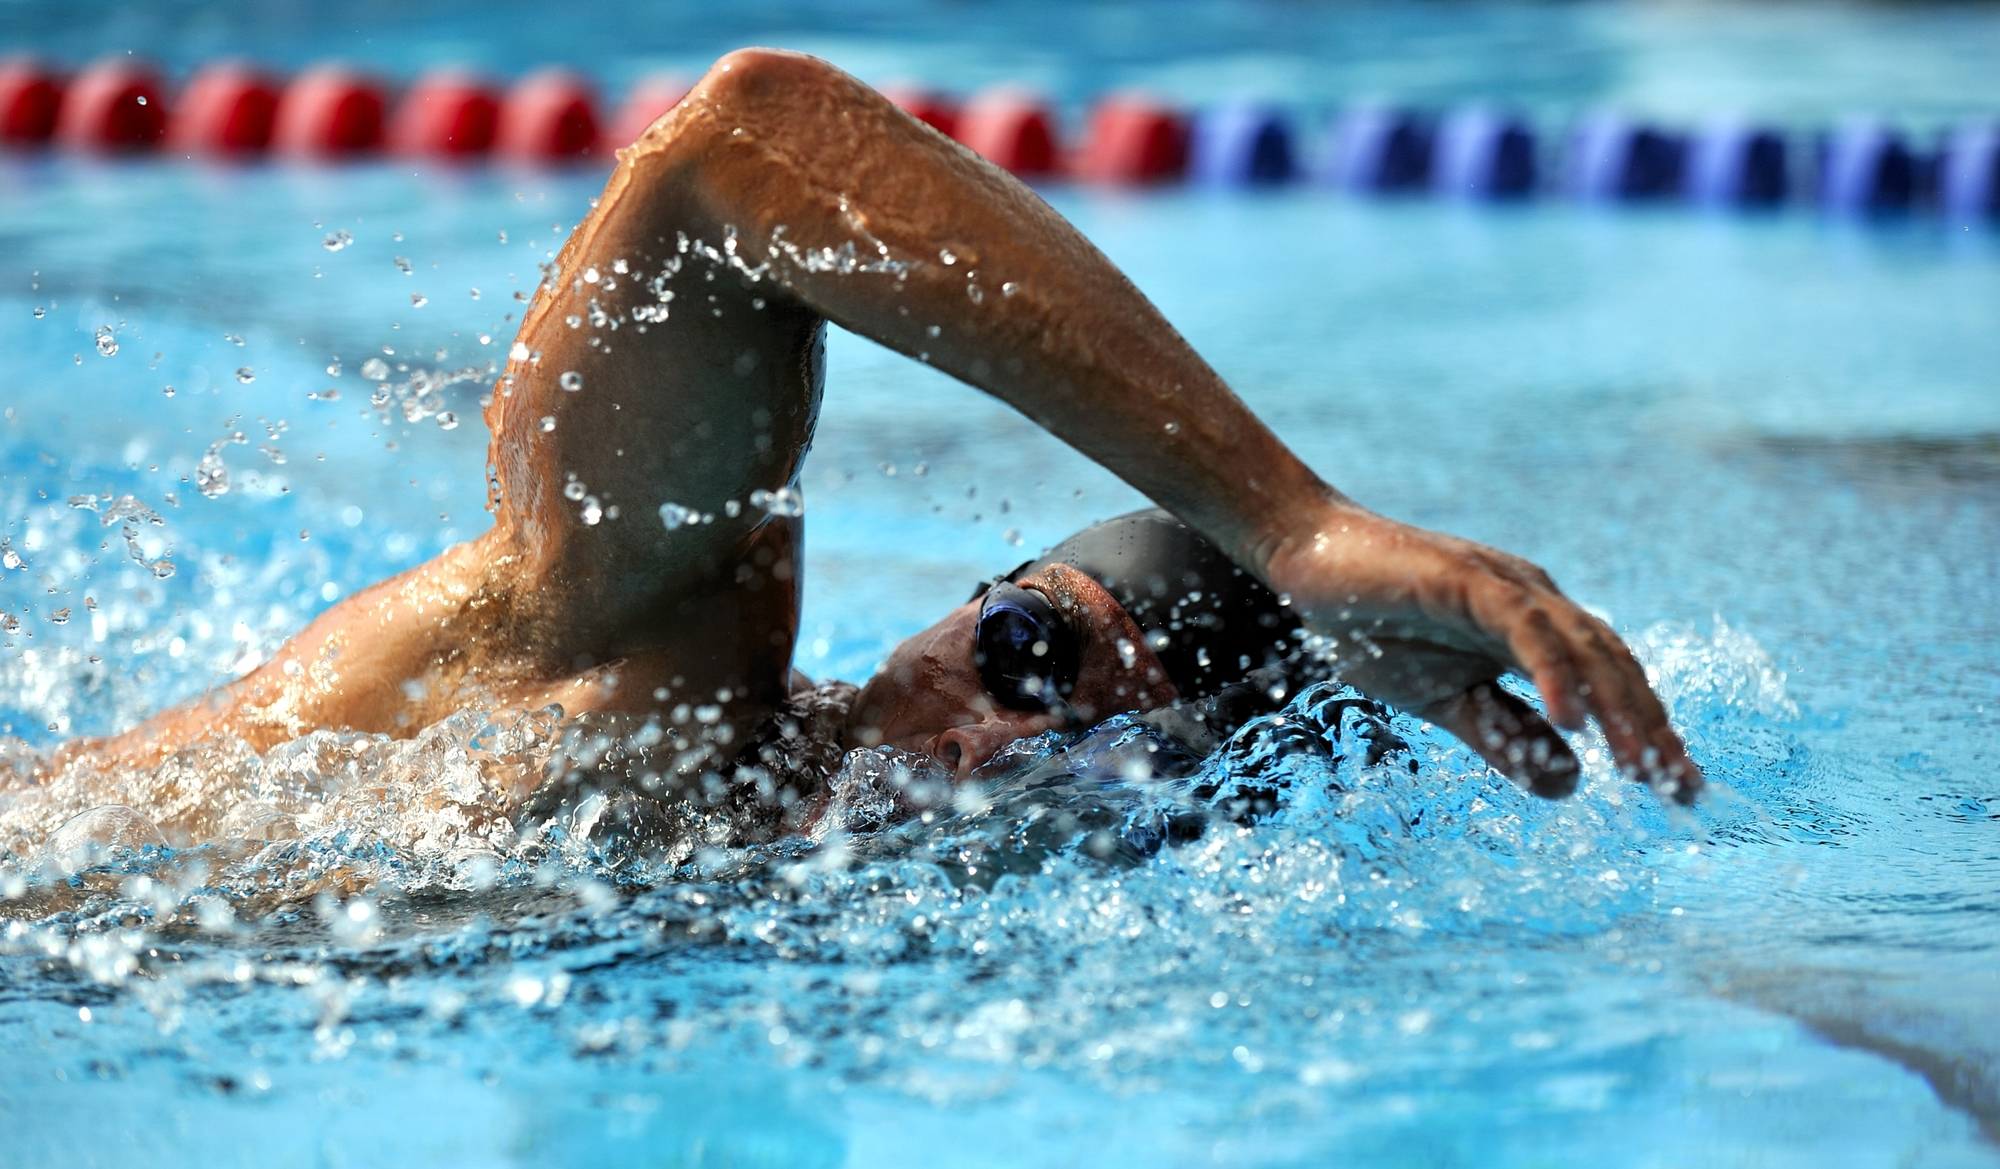 Athlete Swimmer taking part in a race